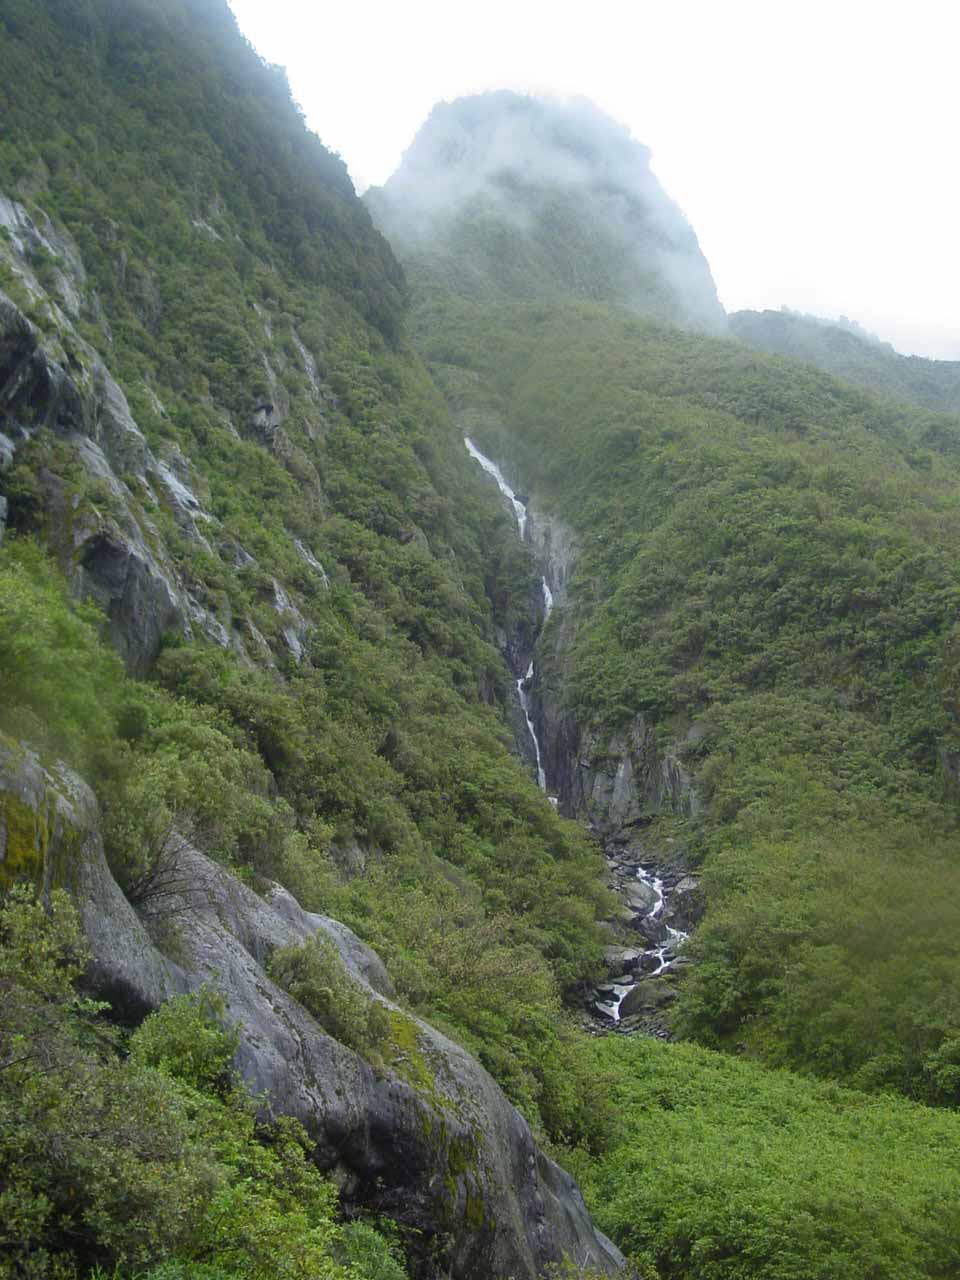 Another waterfall tumbling in a nook beneath a knobby mountain